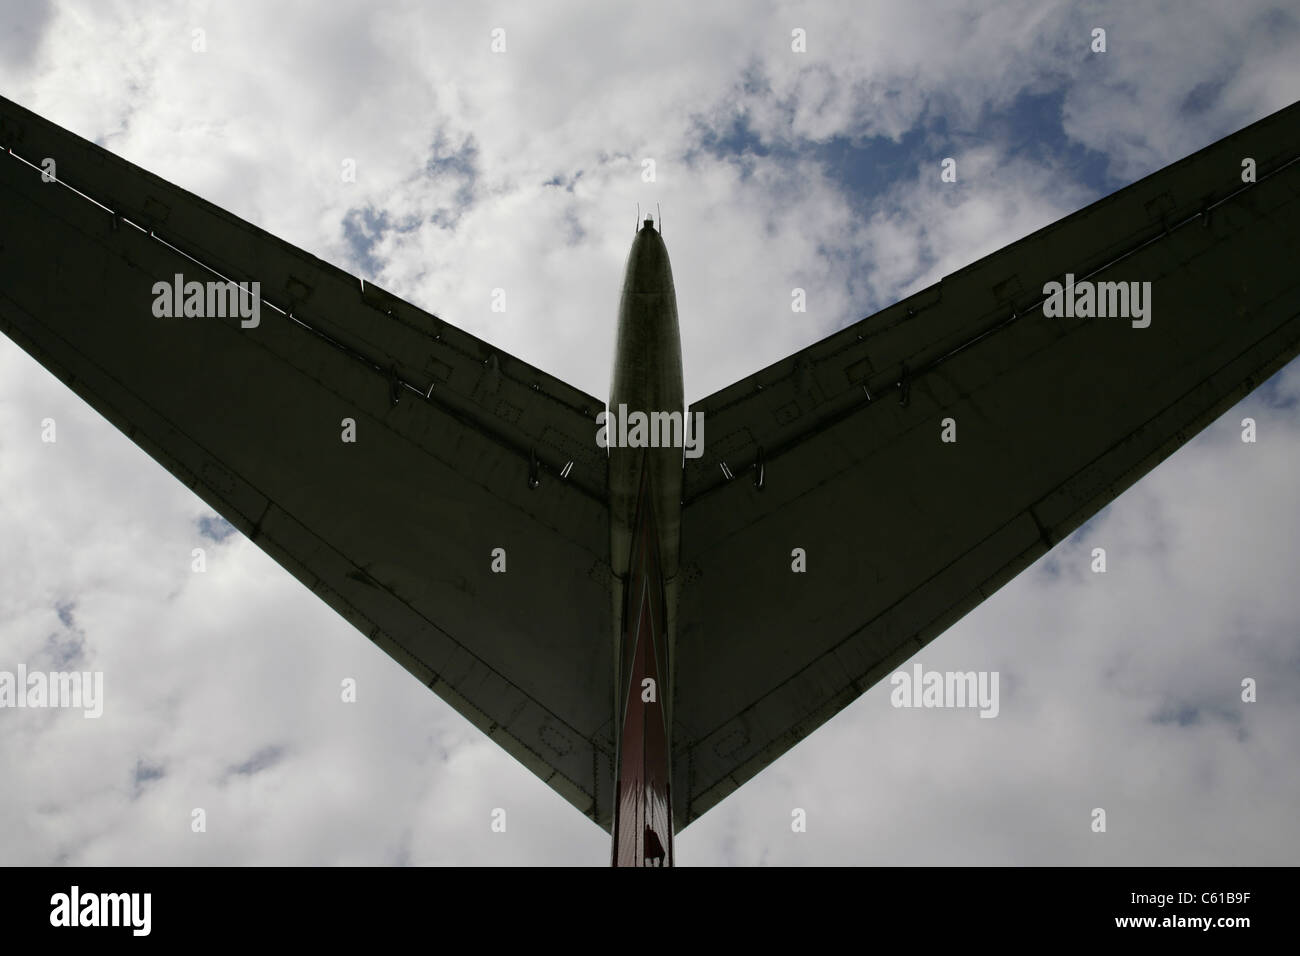 Tailplane of Vickers VC-10 airliner. - Stock Image